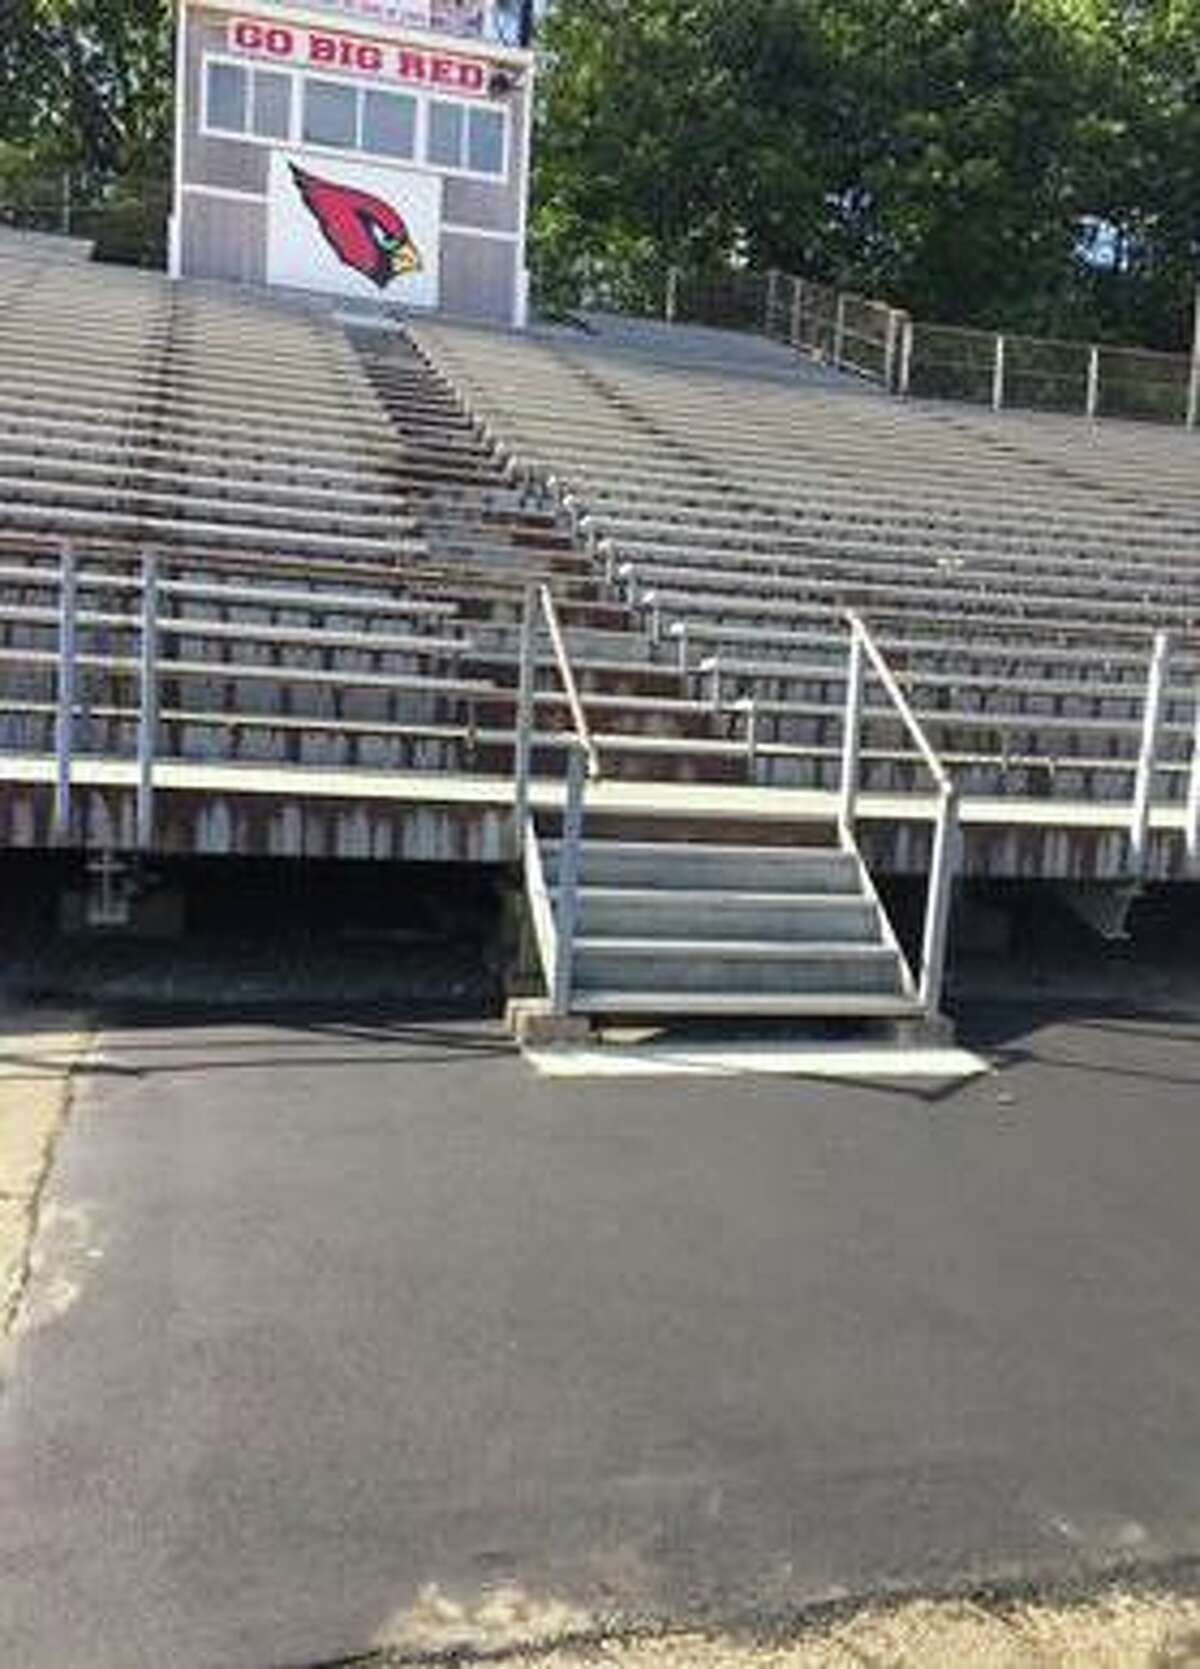 The bleachers are open and ready for the first football game of the season at Cardinal Stadium at Greenwich High School in fall 2019. The bleachers were shored up thanks to a grant from the Greenwich Athletic Foundation.